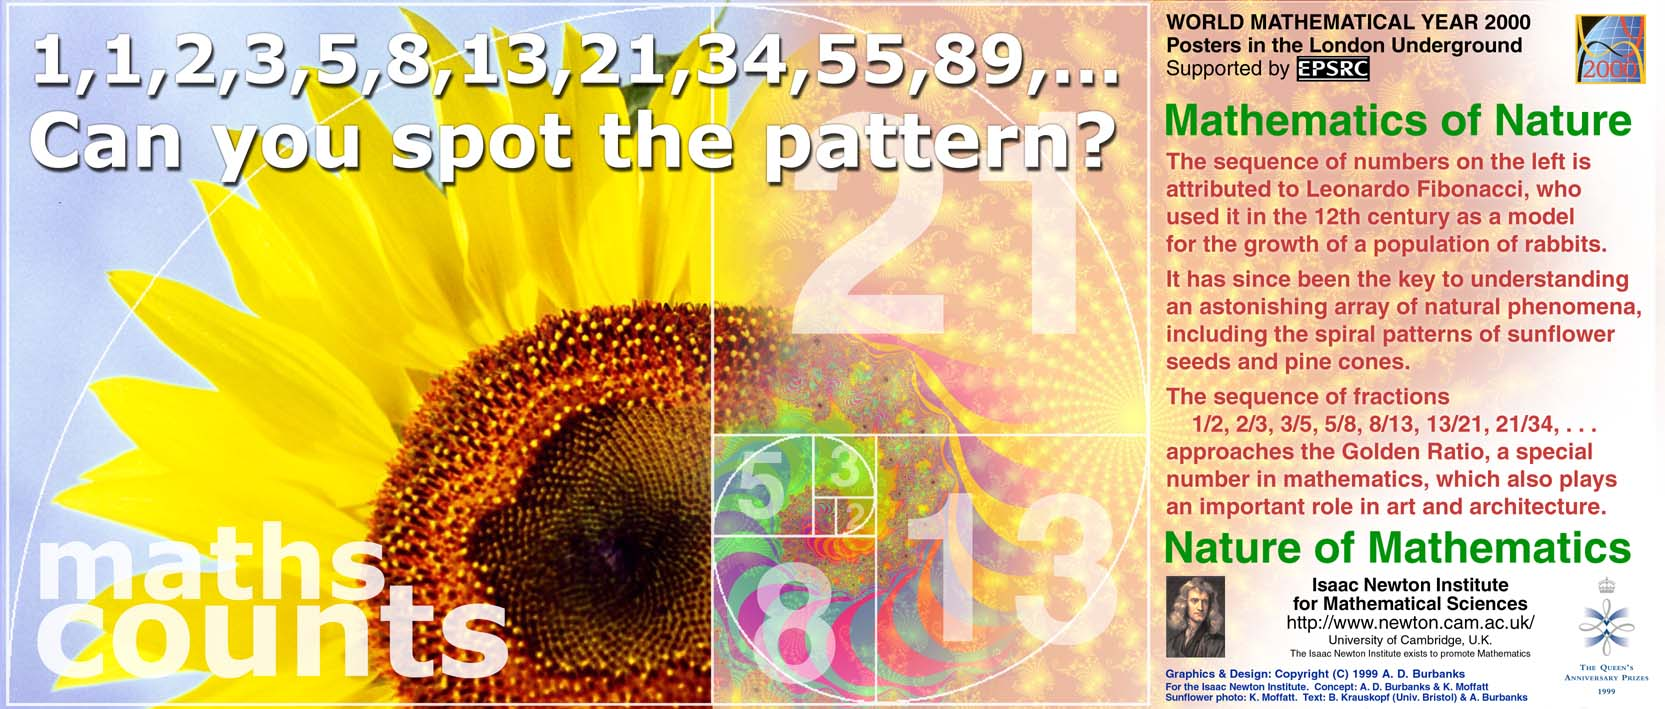 The Posters | Isaac Newton Institute for Mathematical Sciences